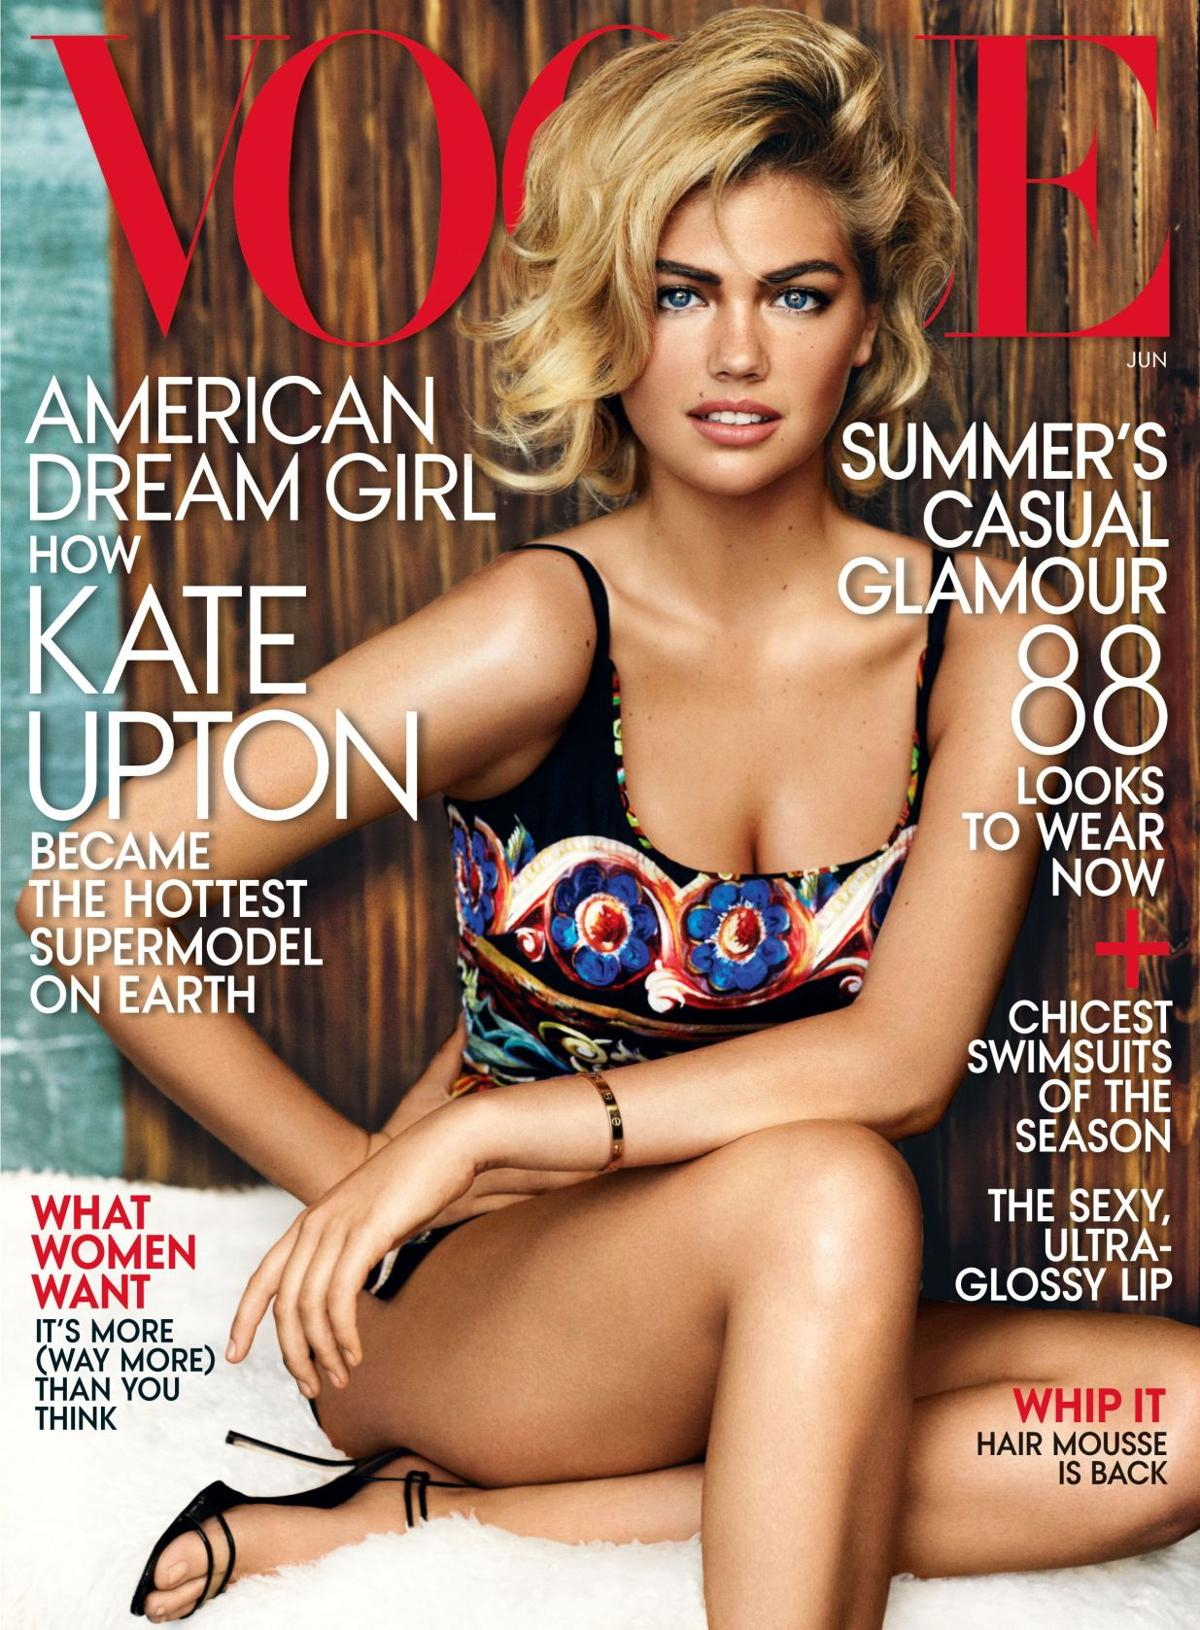 Kate Upton graces cover of June issue of 'Vogue'